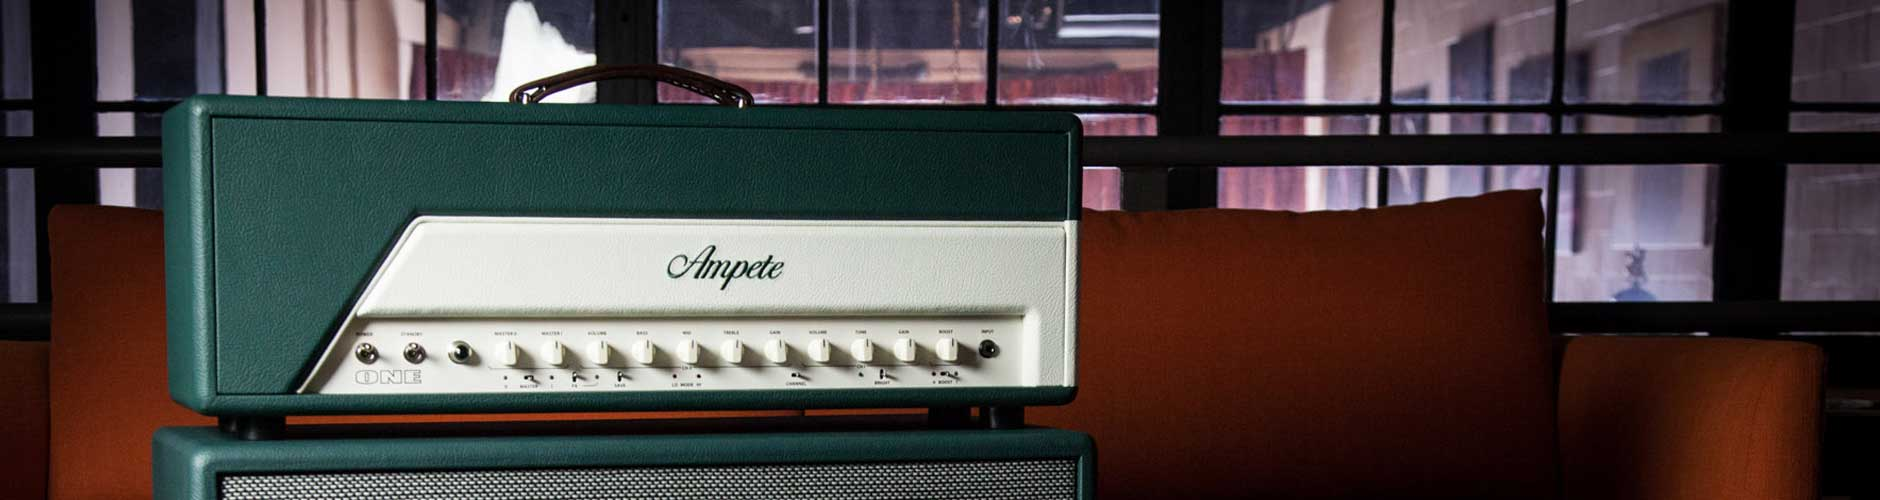 Ampete Amplifiers At The Music Zoo